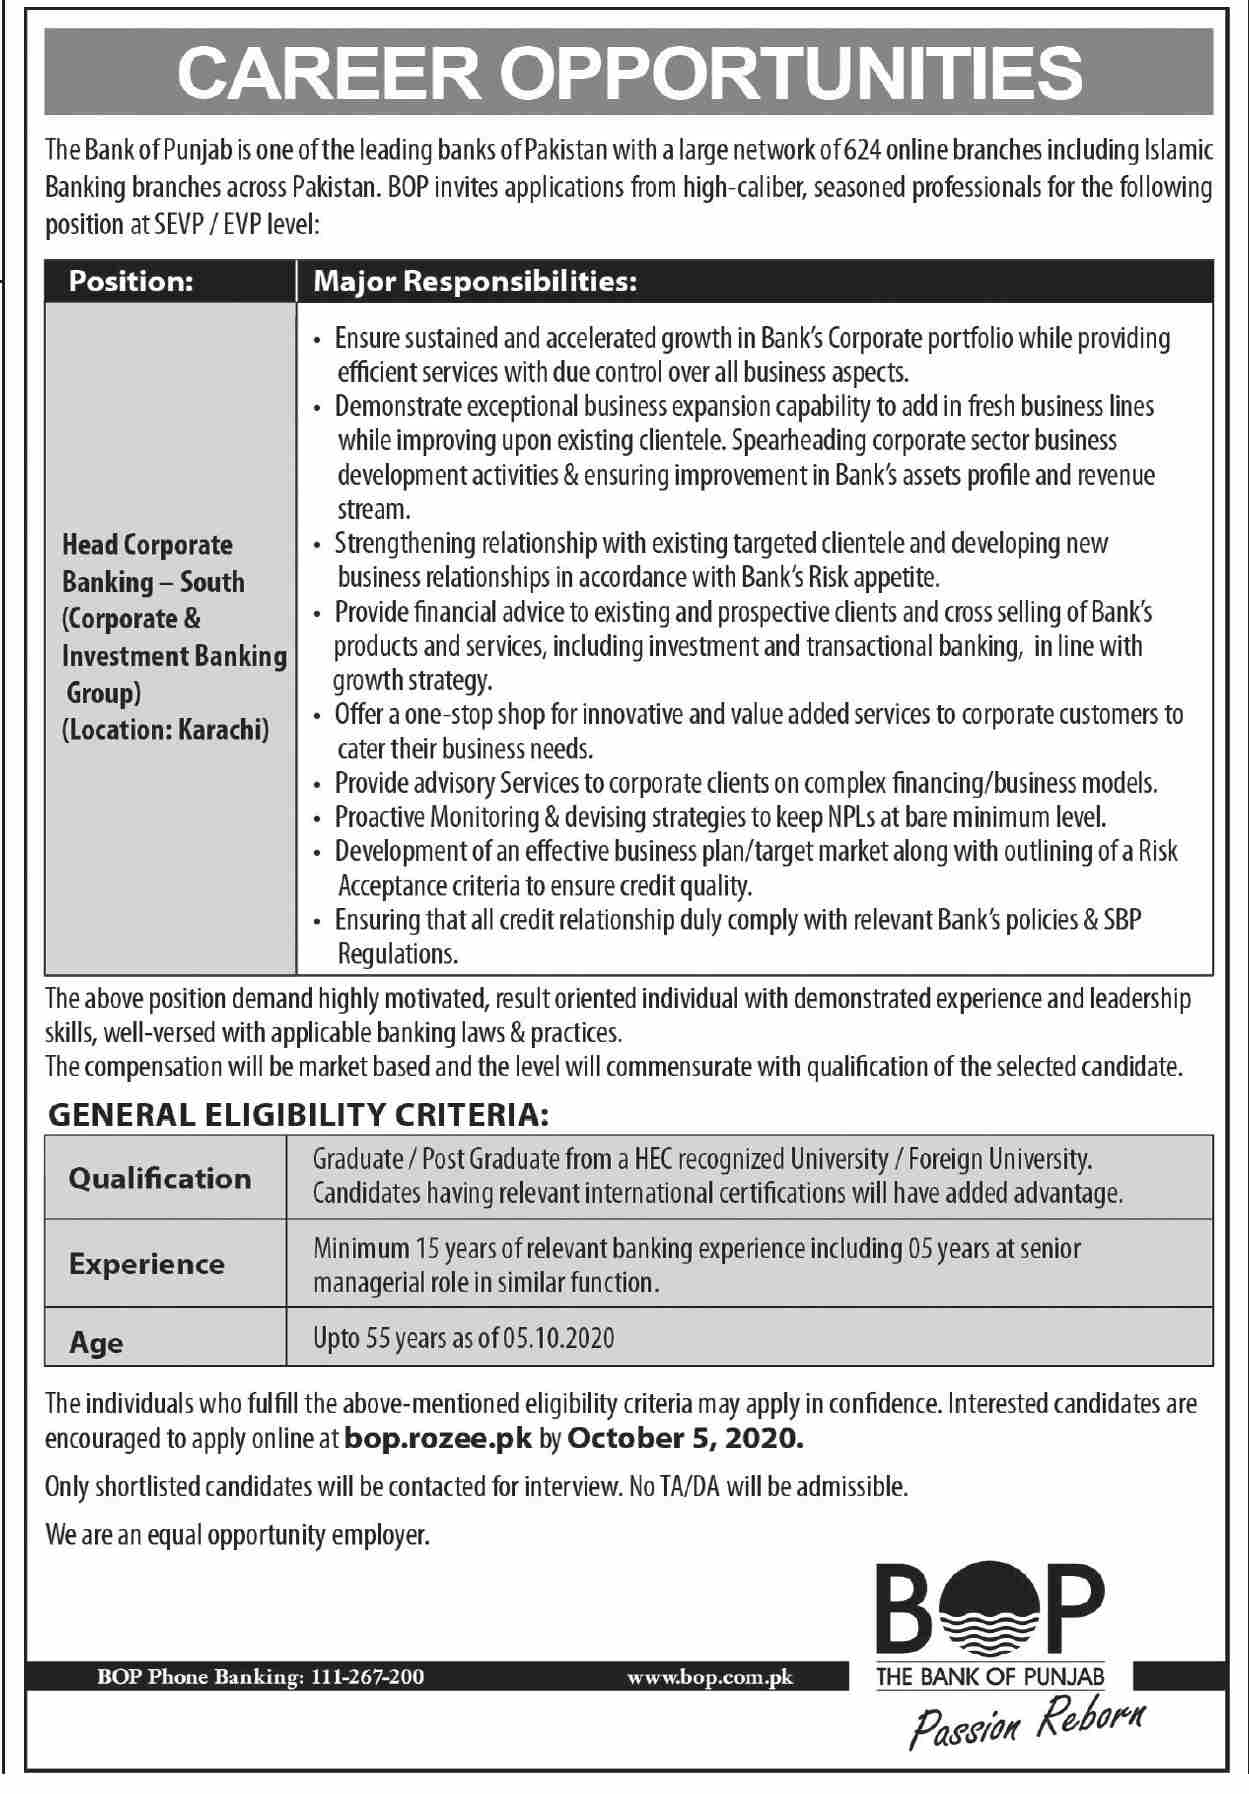 The Bank of Punjab BOP Jobs September 2020